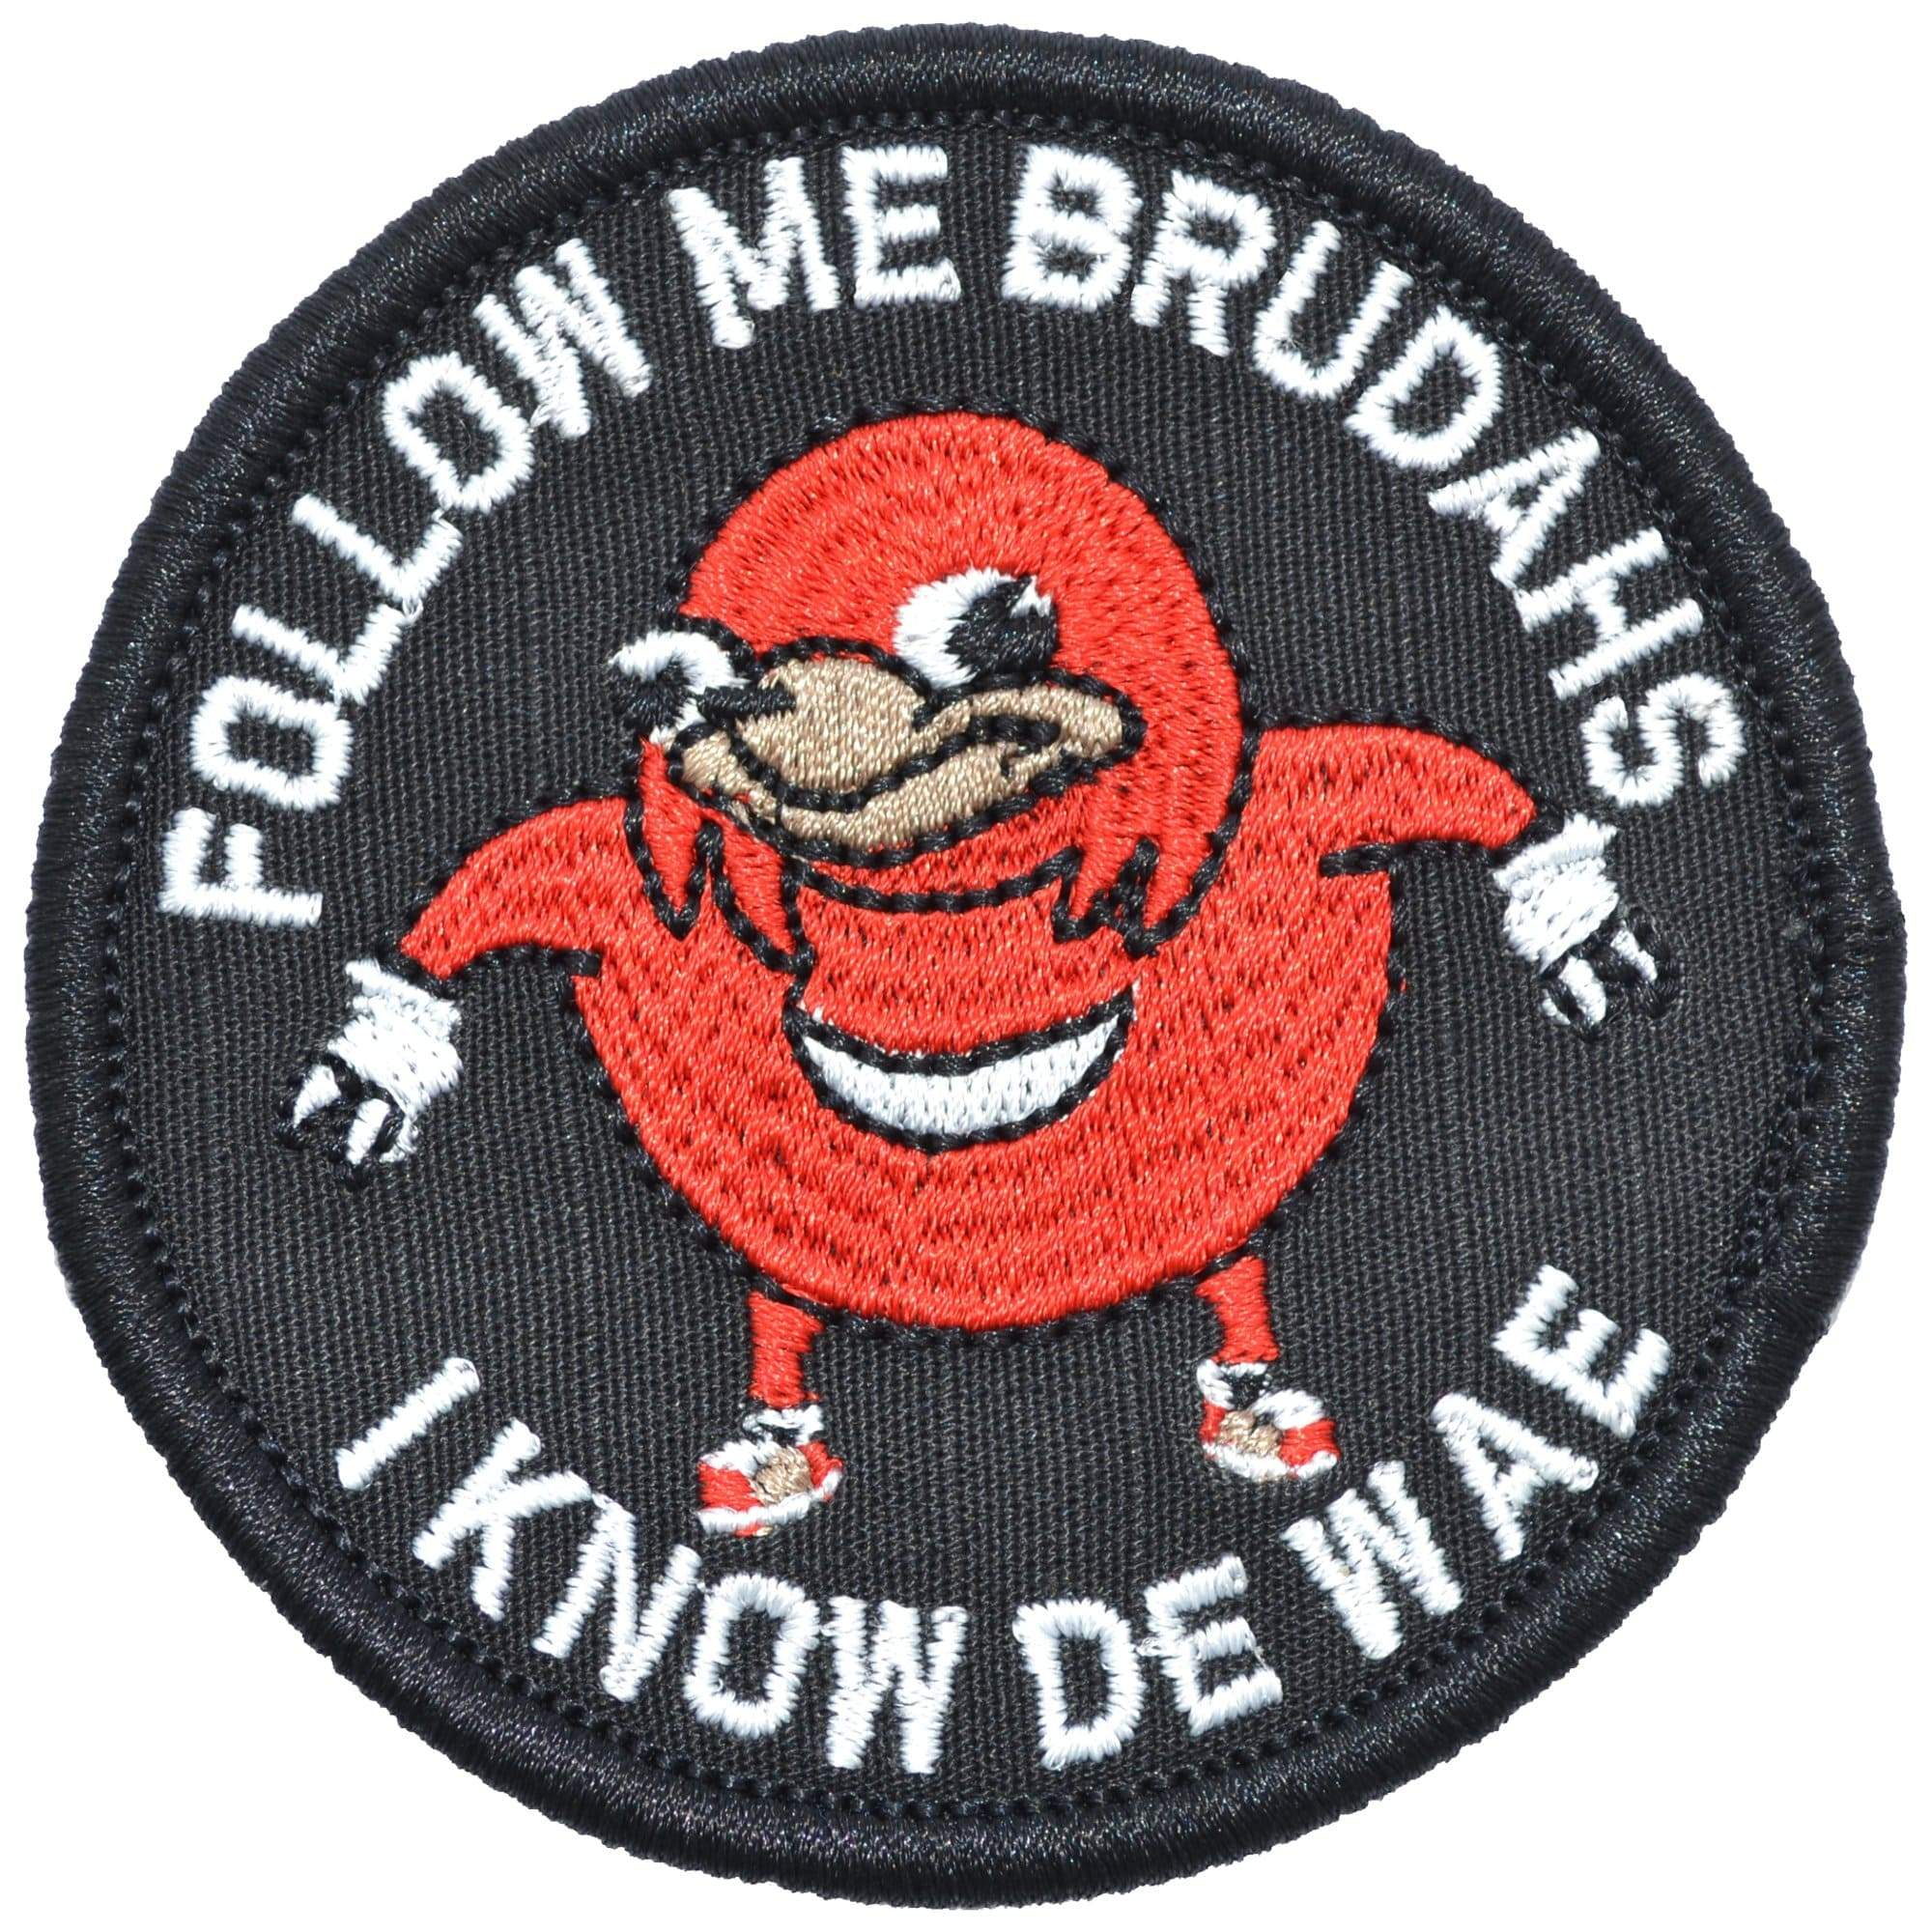 "Ugandan Knuckles ""Follow Me Brudahs I Know De Wae"" - 3 inch Round Patch"